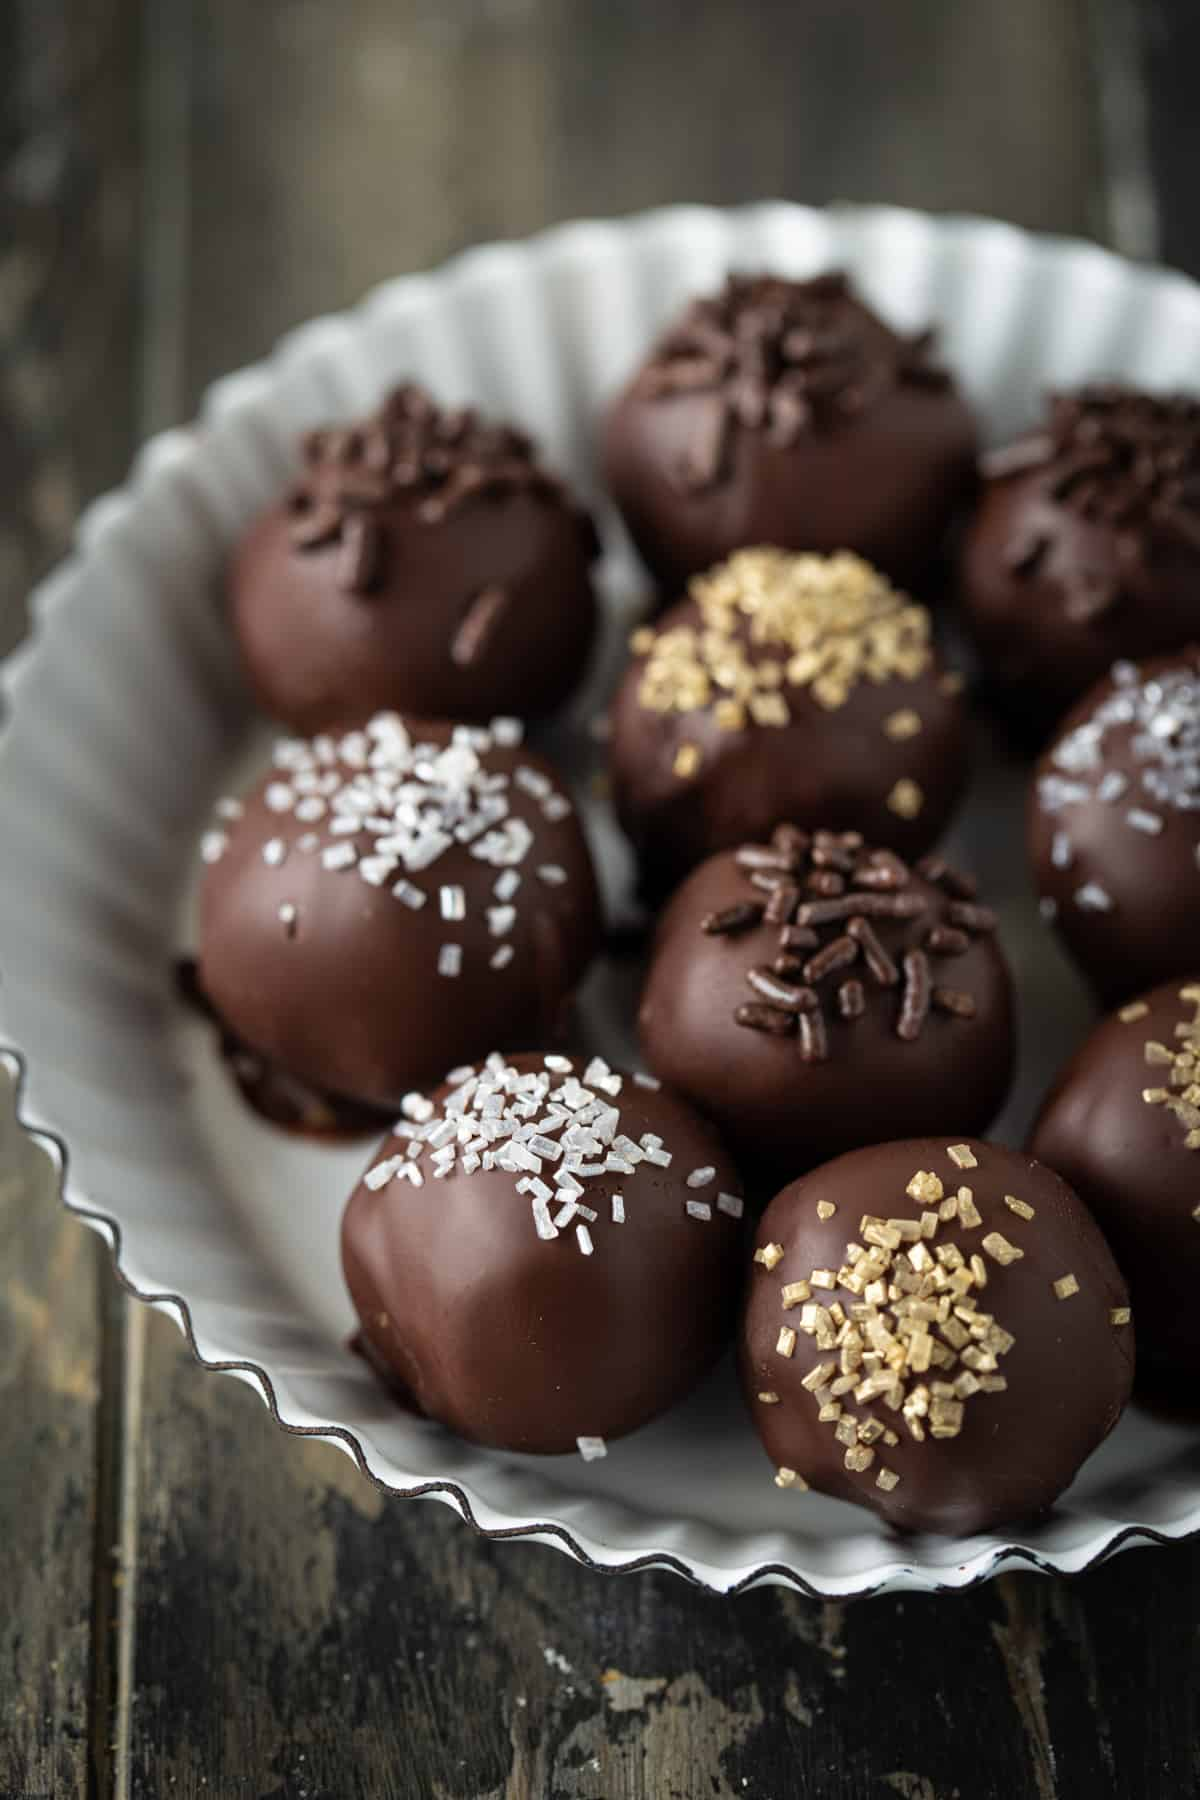 Decorated truffles in a small white metal fluted tart pan